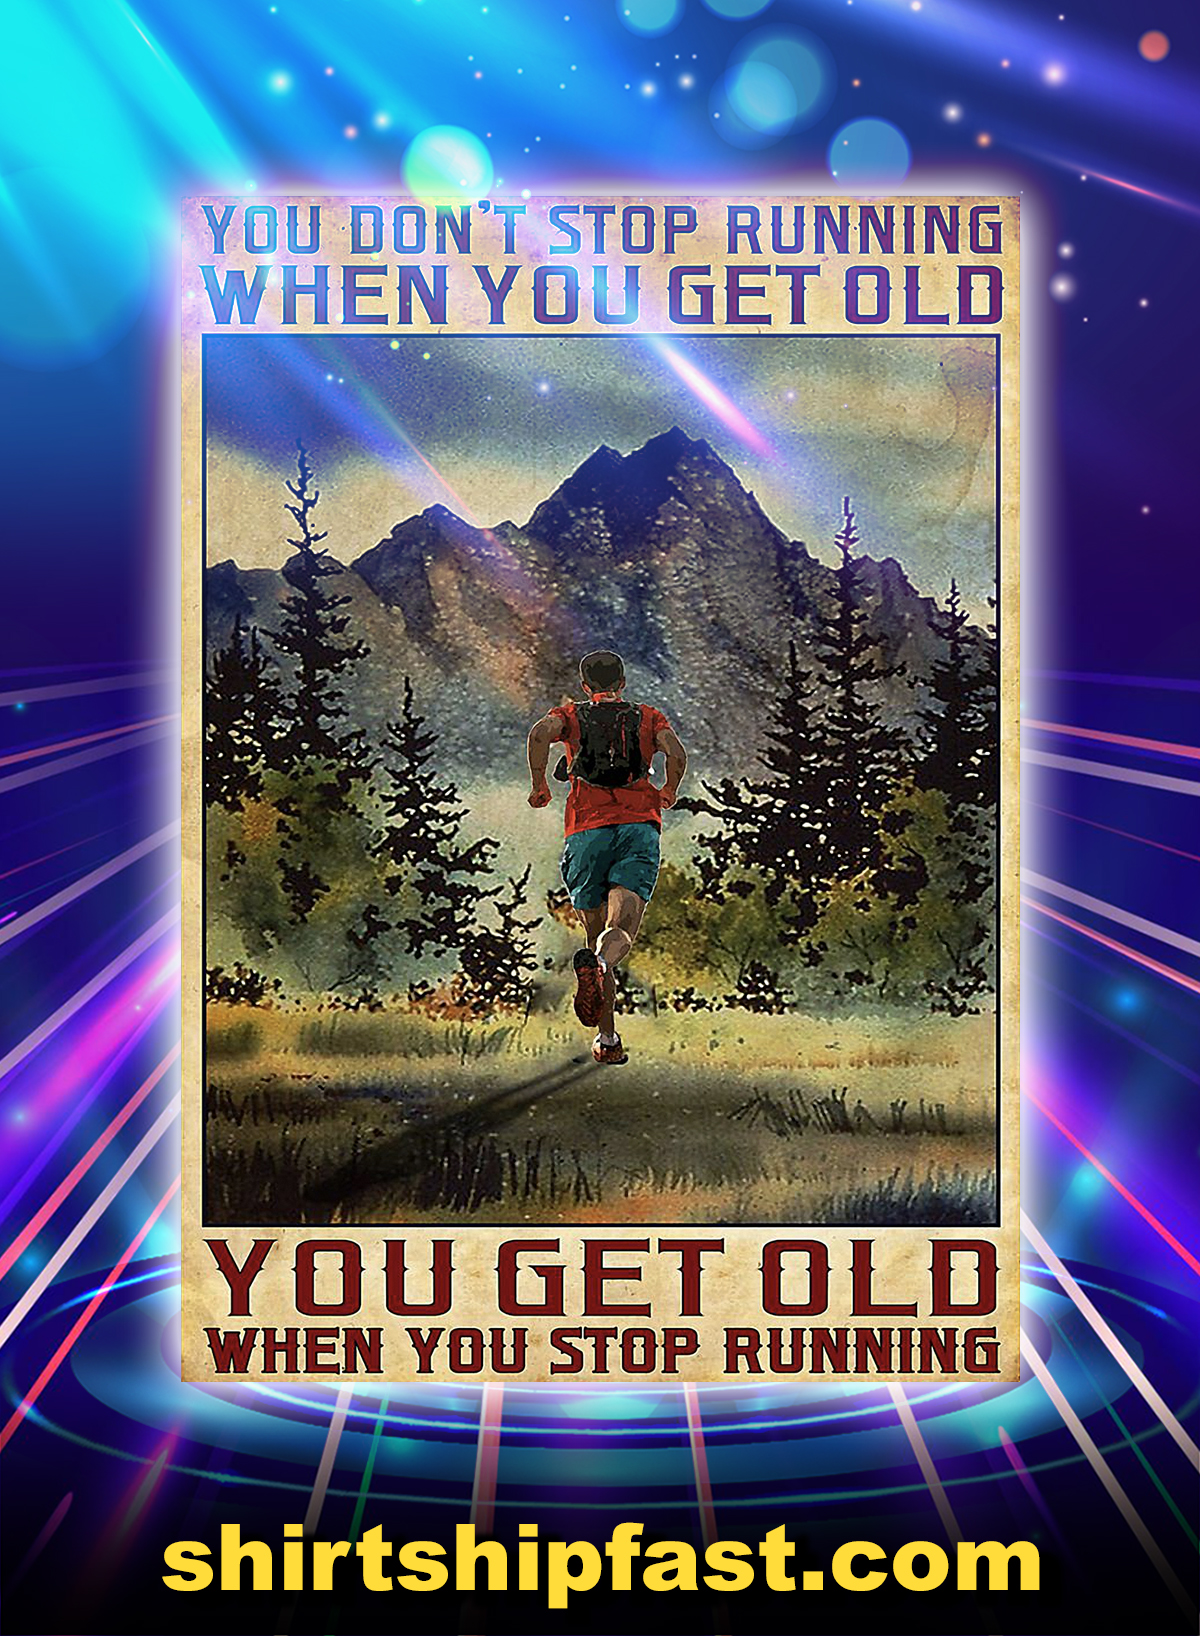 You don't stop running when you get old poster - A4